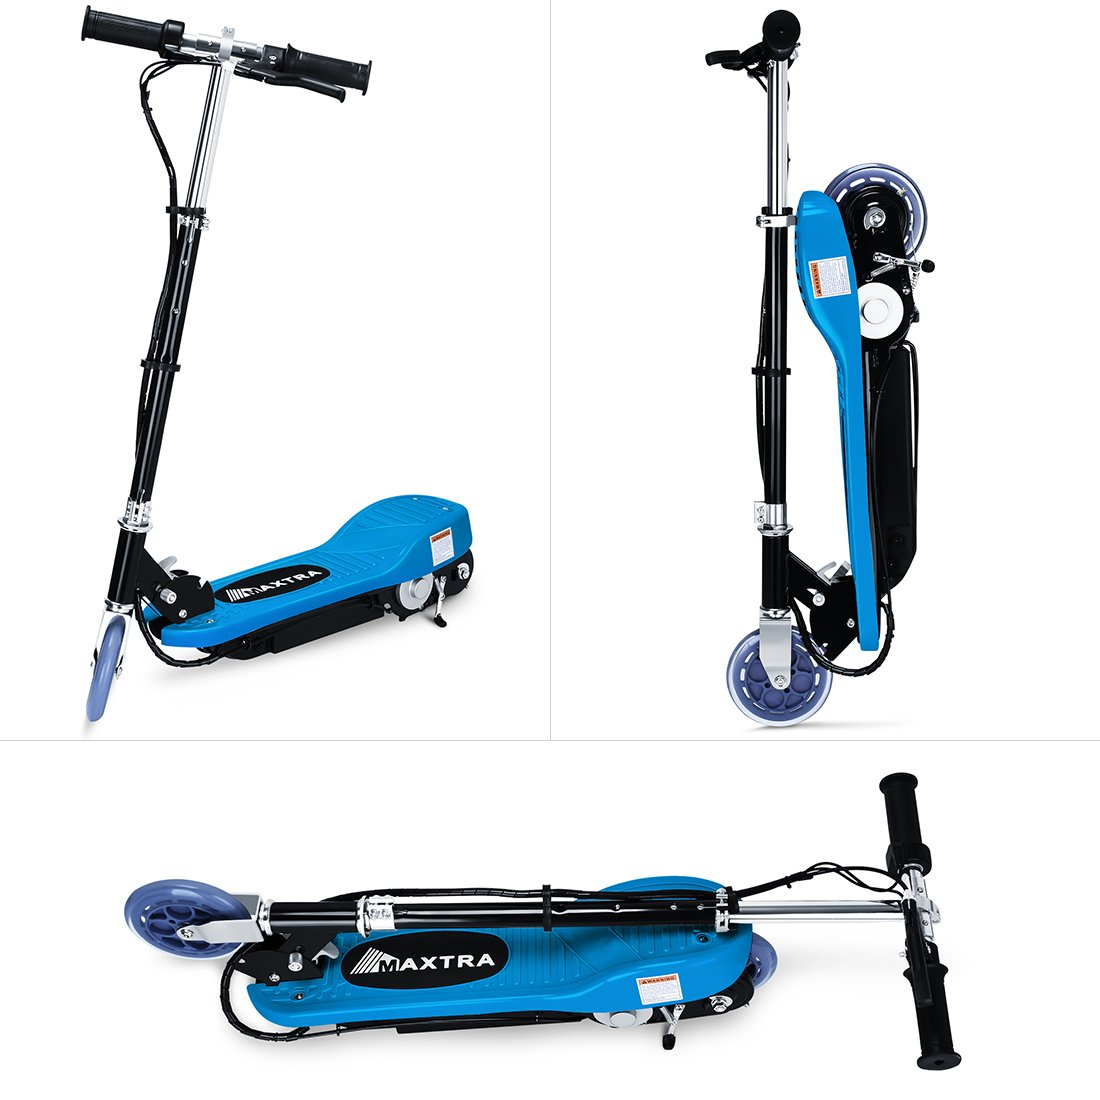 Amazon.com: BenefitForU - Patinete eléctrico plegable para ...